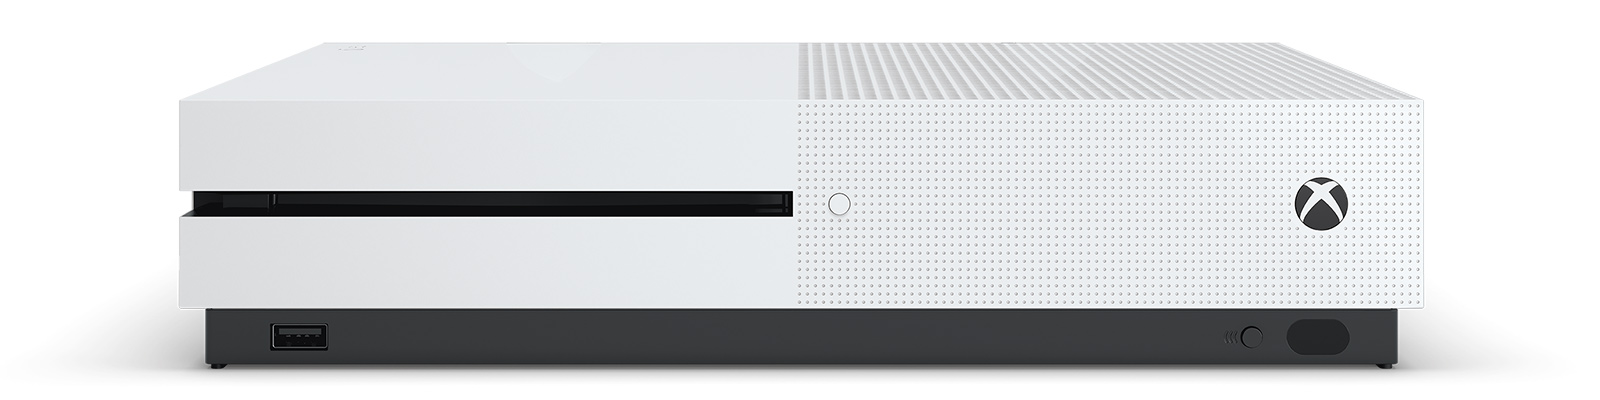 how to get spotify on xbox one